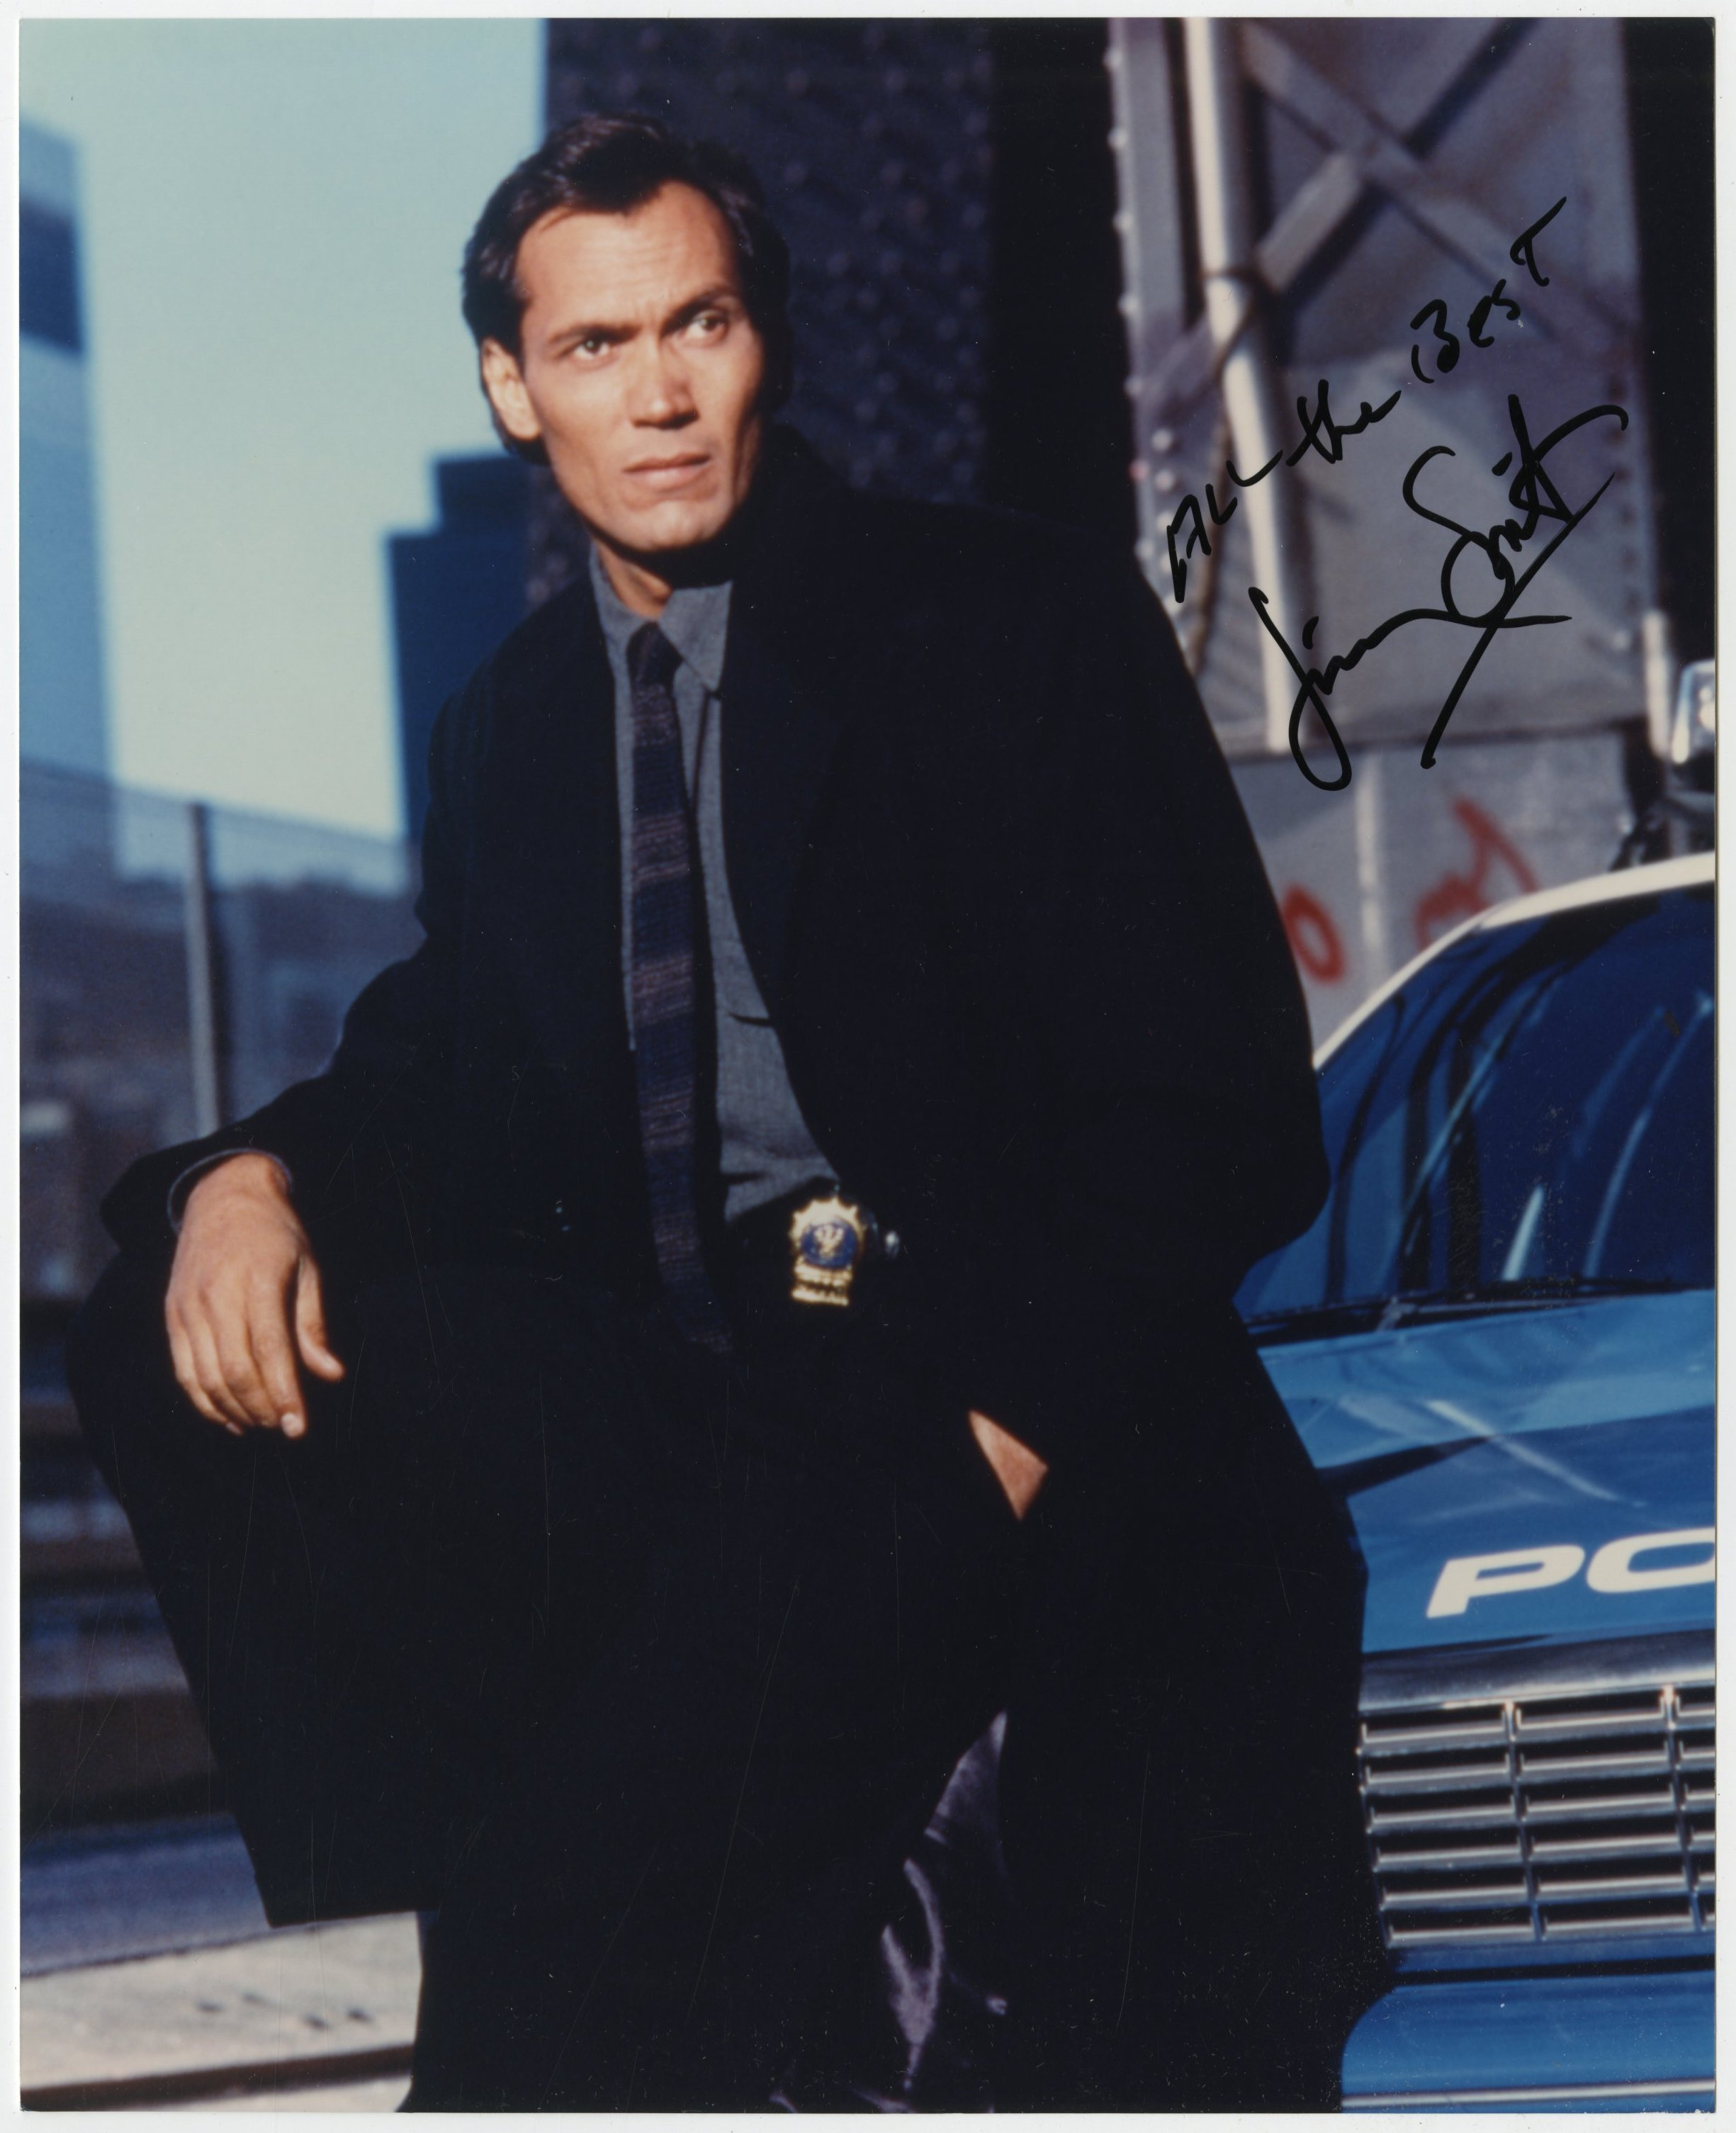 HILL STREET BLUES Photo signed by Jimmy Smits - 8x10 in  - 1981